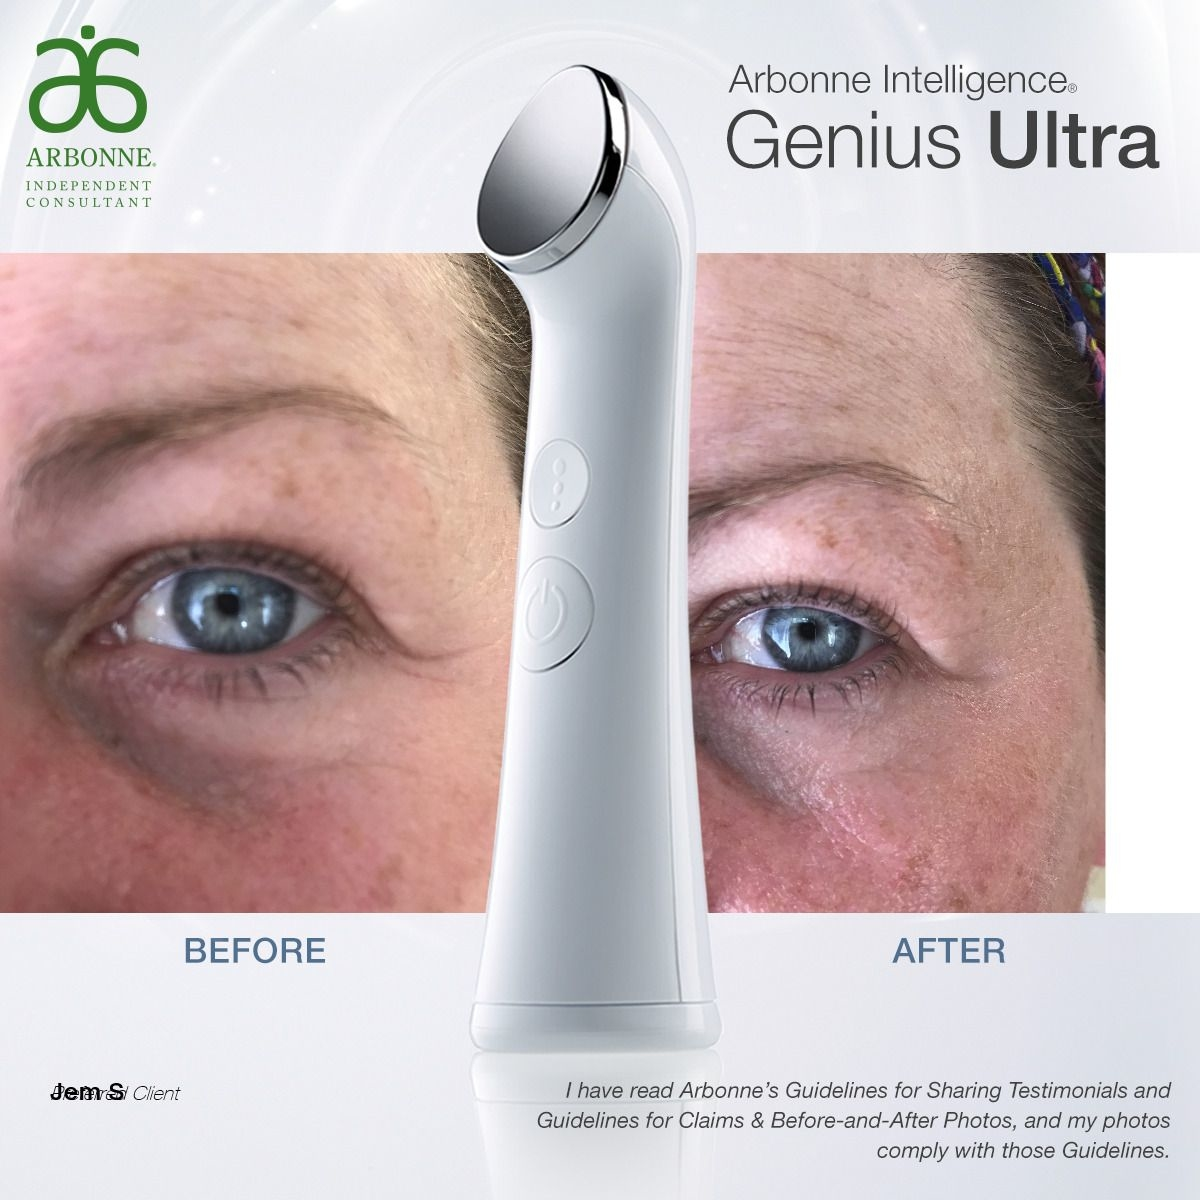 Genius Ultra By Arbonne Independent Consultant In Crofton Md